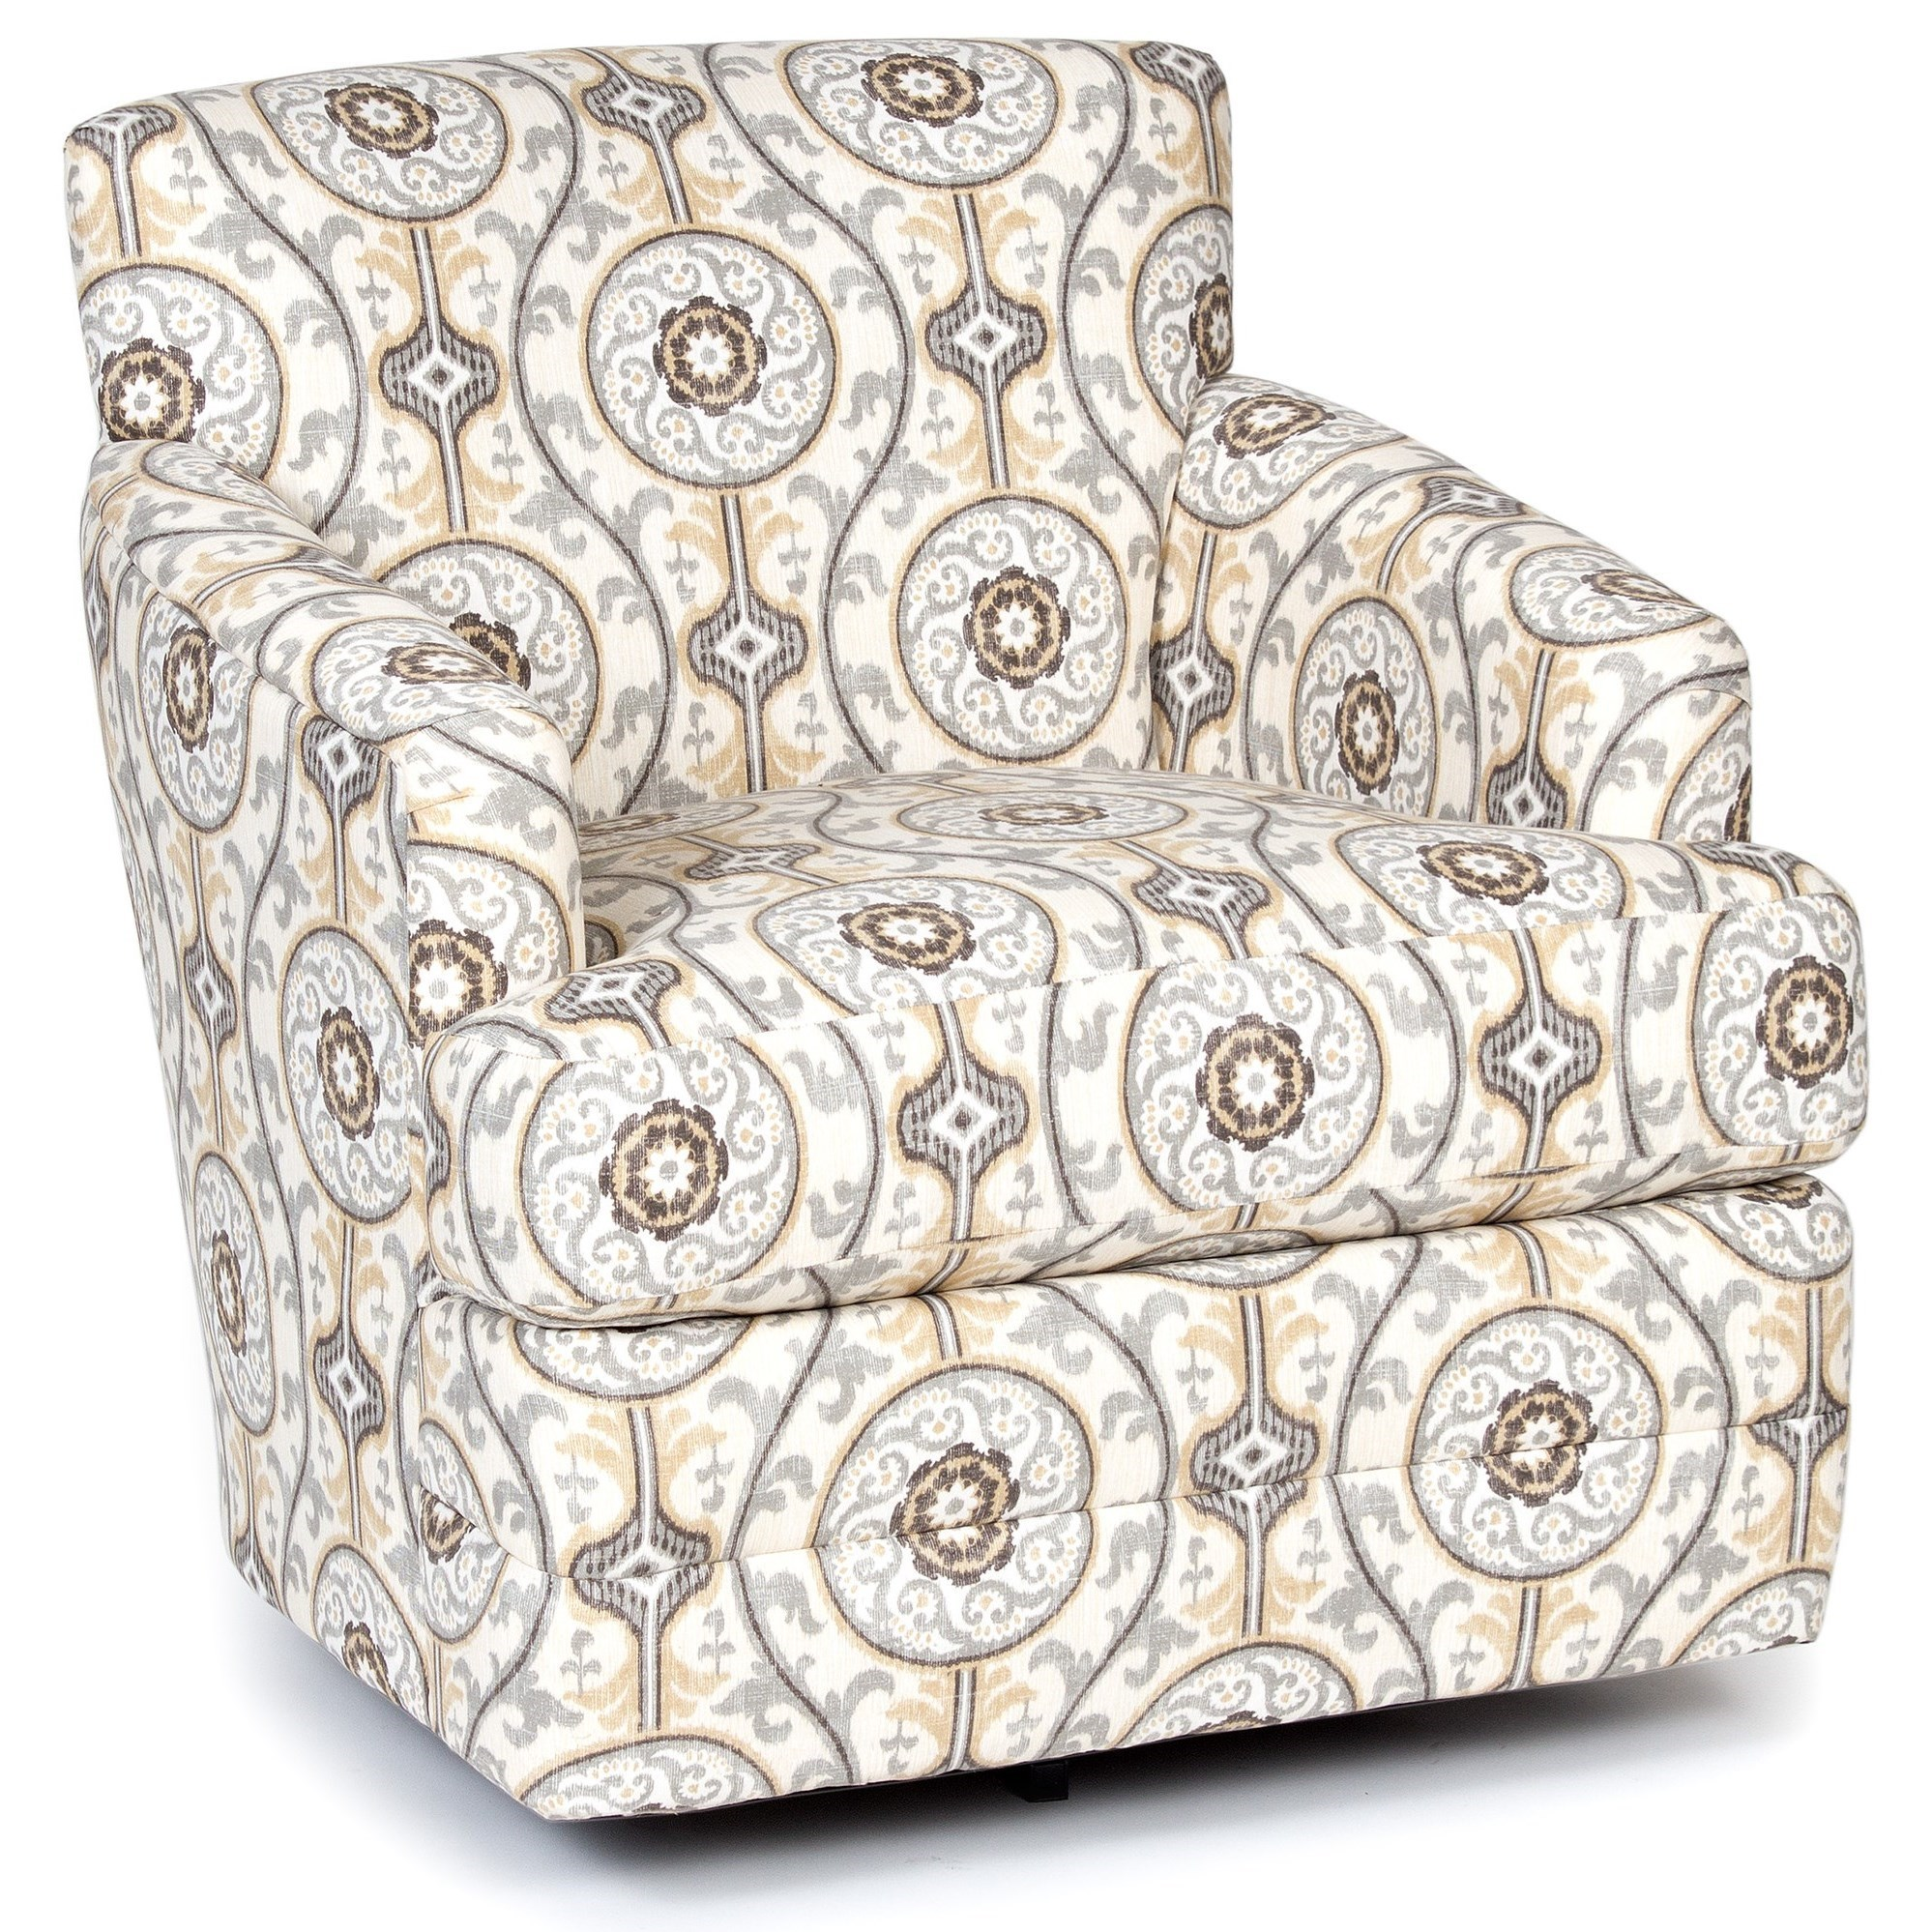 Chairs America Accent Chairs And OttomansTransitional Swivel Rocker